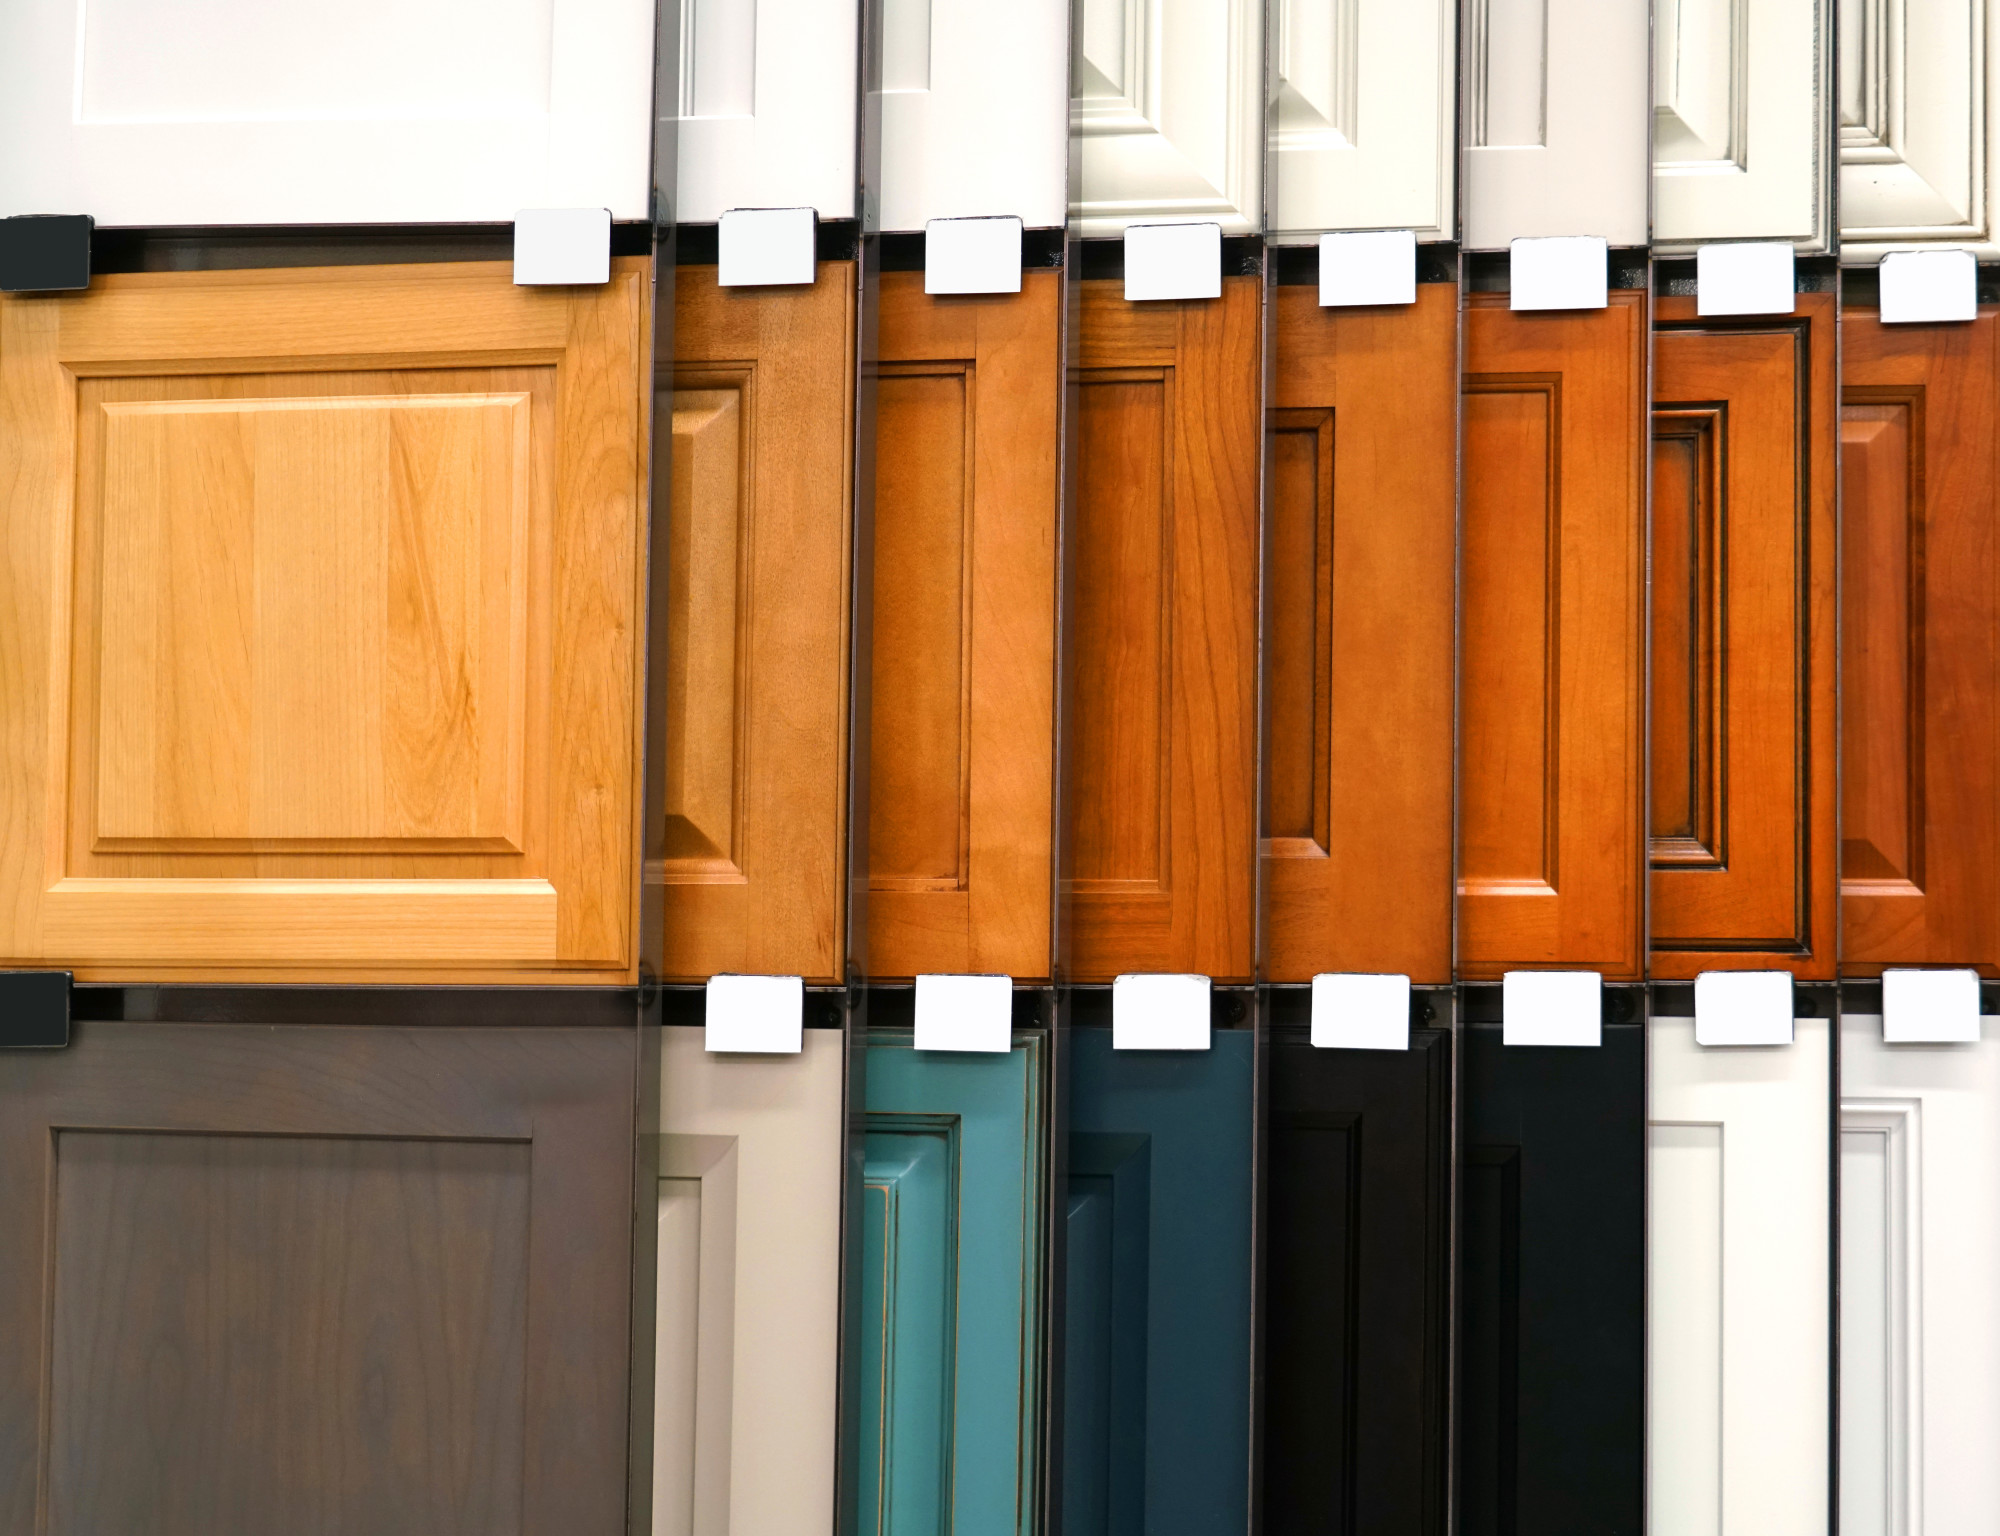 A fresh kitchen cabinet color can completely transform your kitchen. Get inspired with this guide featuring 10 kitchen cabinet color ideas.